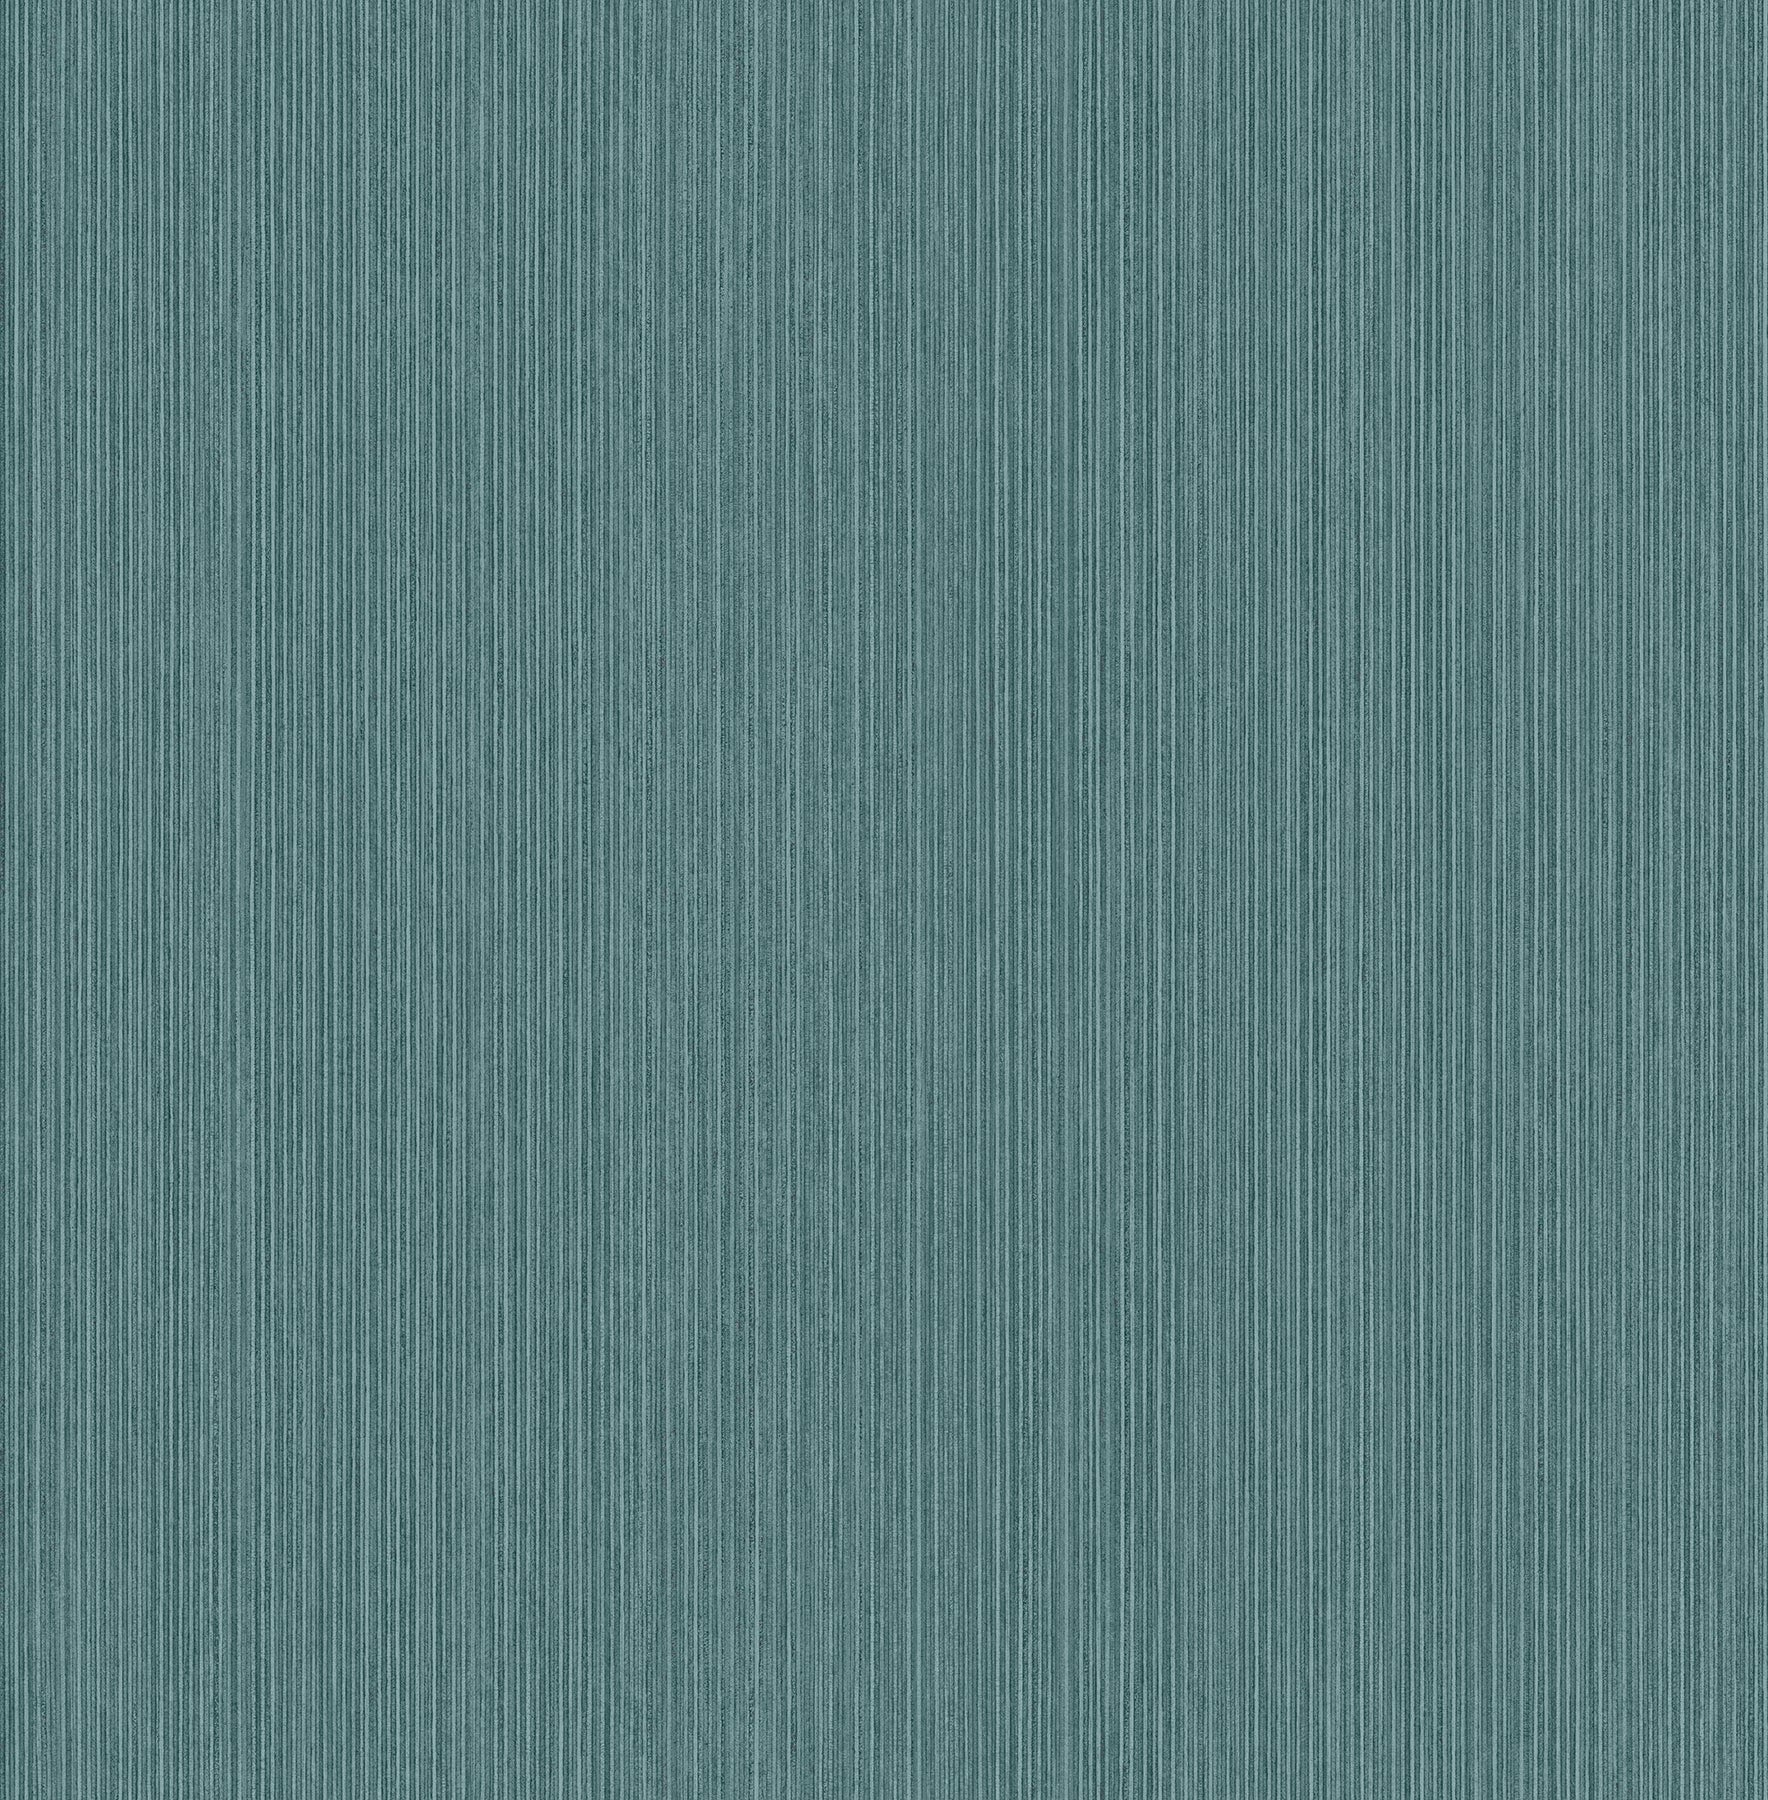 William Teal Plywood Texture Wallpaper